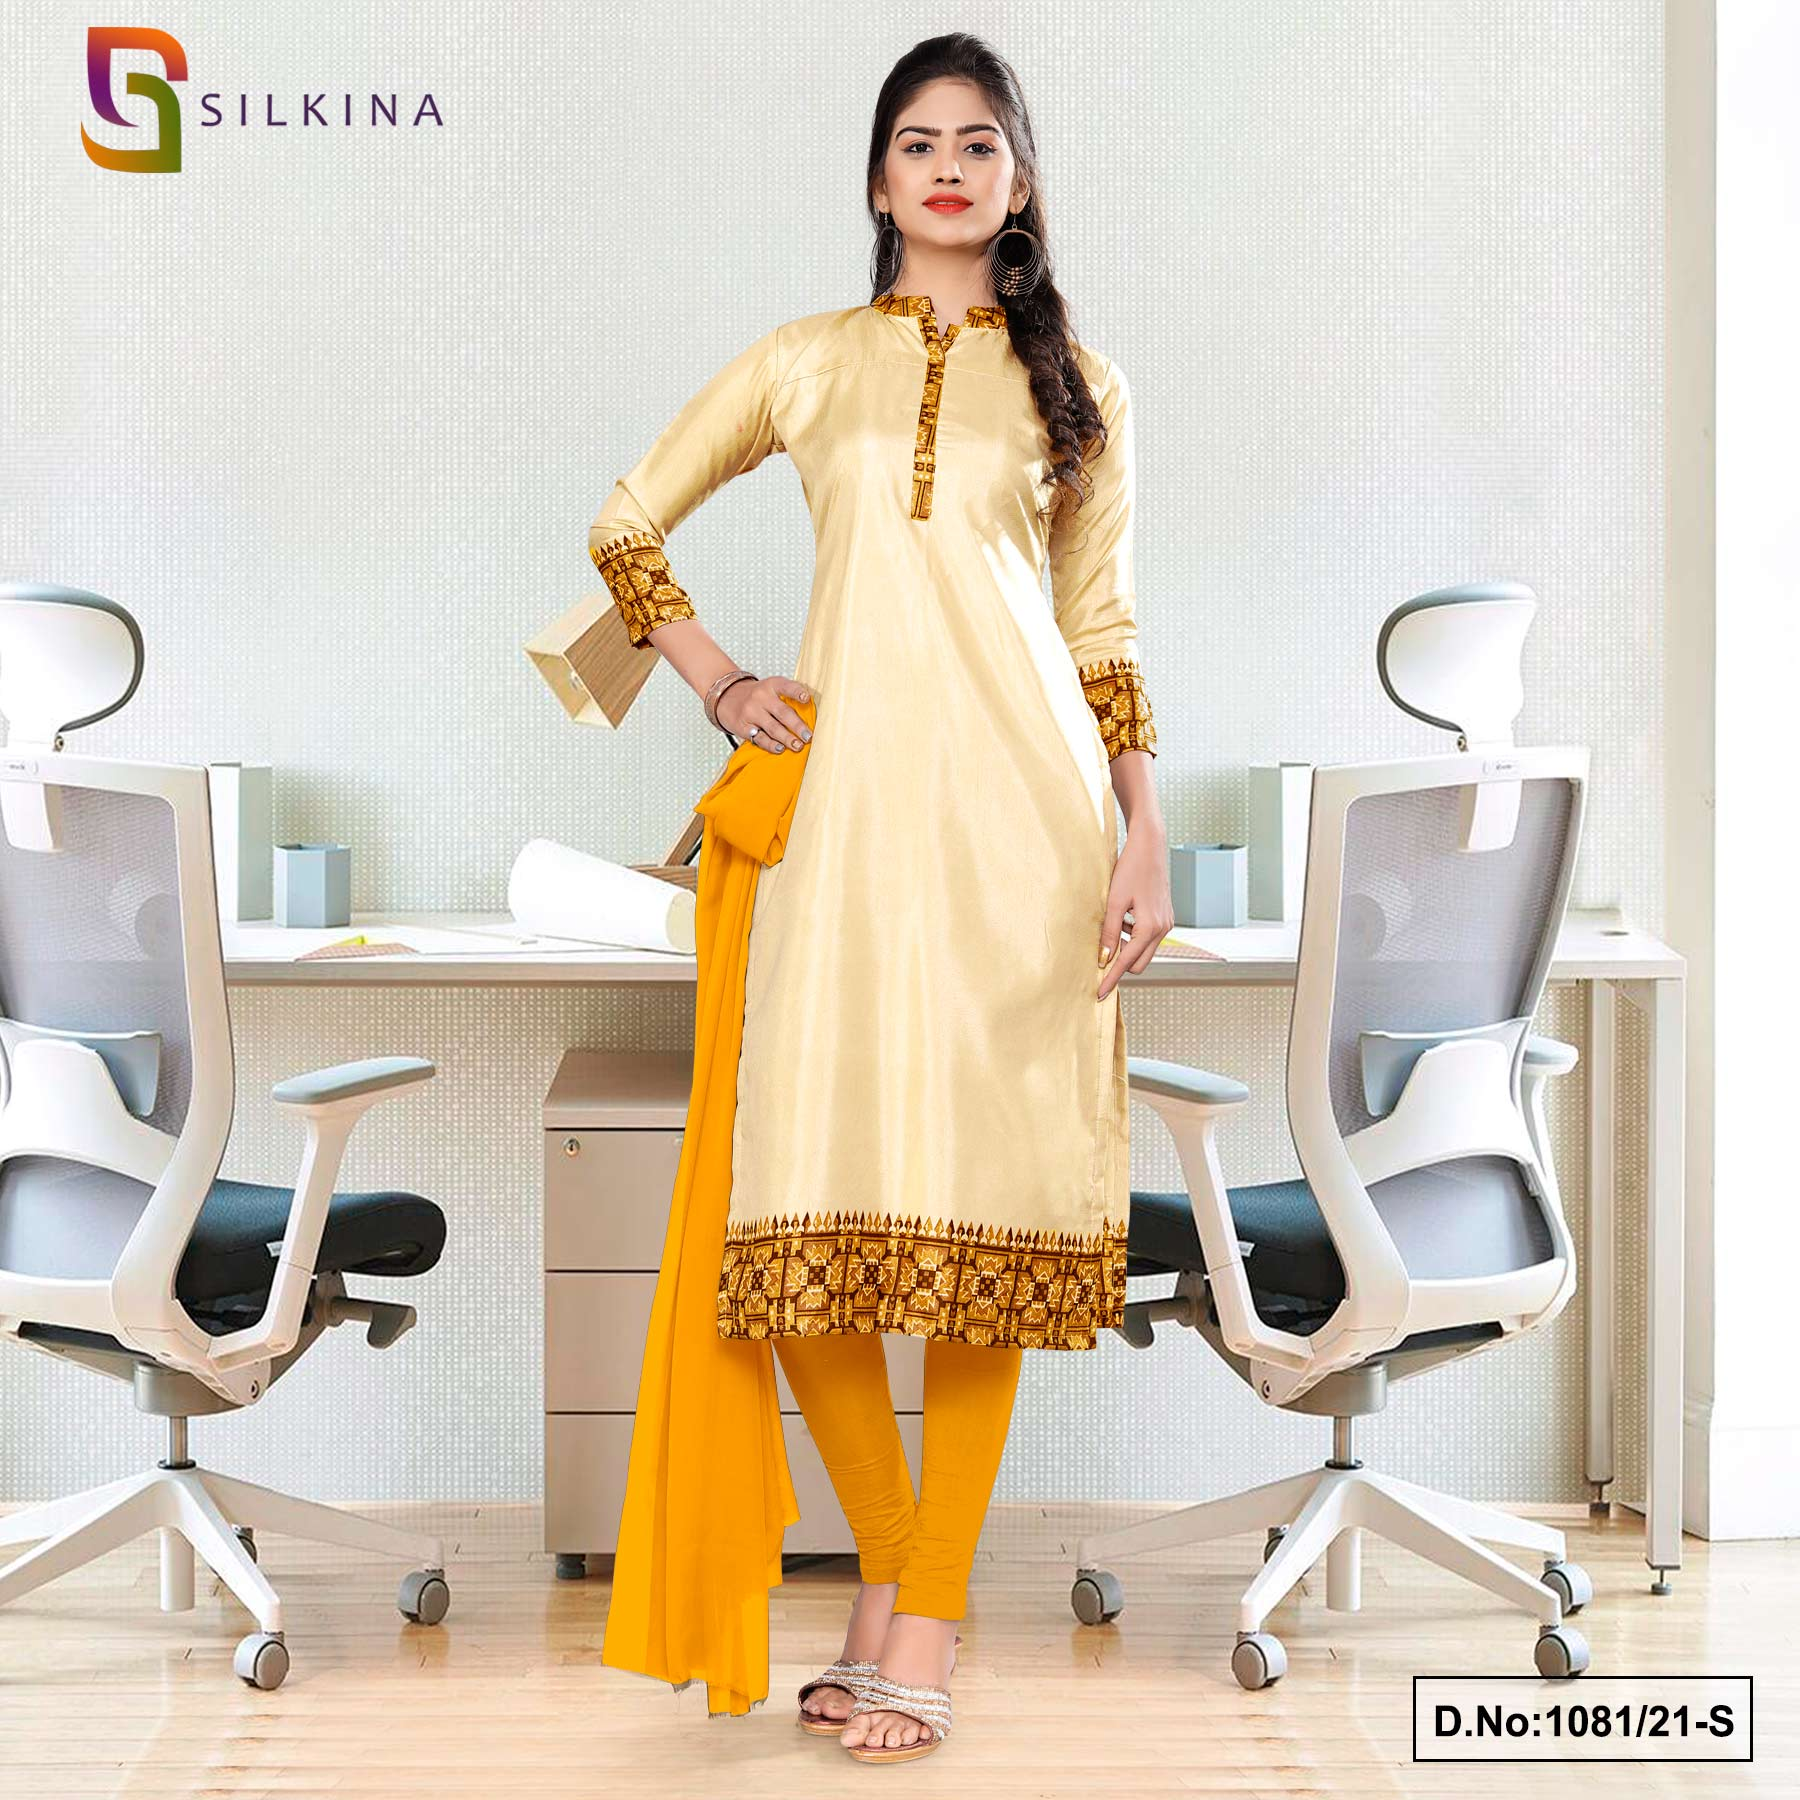 Beige Yellow Printed Blouse Concept Polycotton Raw Silk Salwar Kameez for Receptionist Uniform Sarees